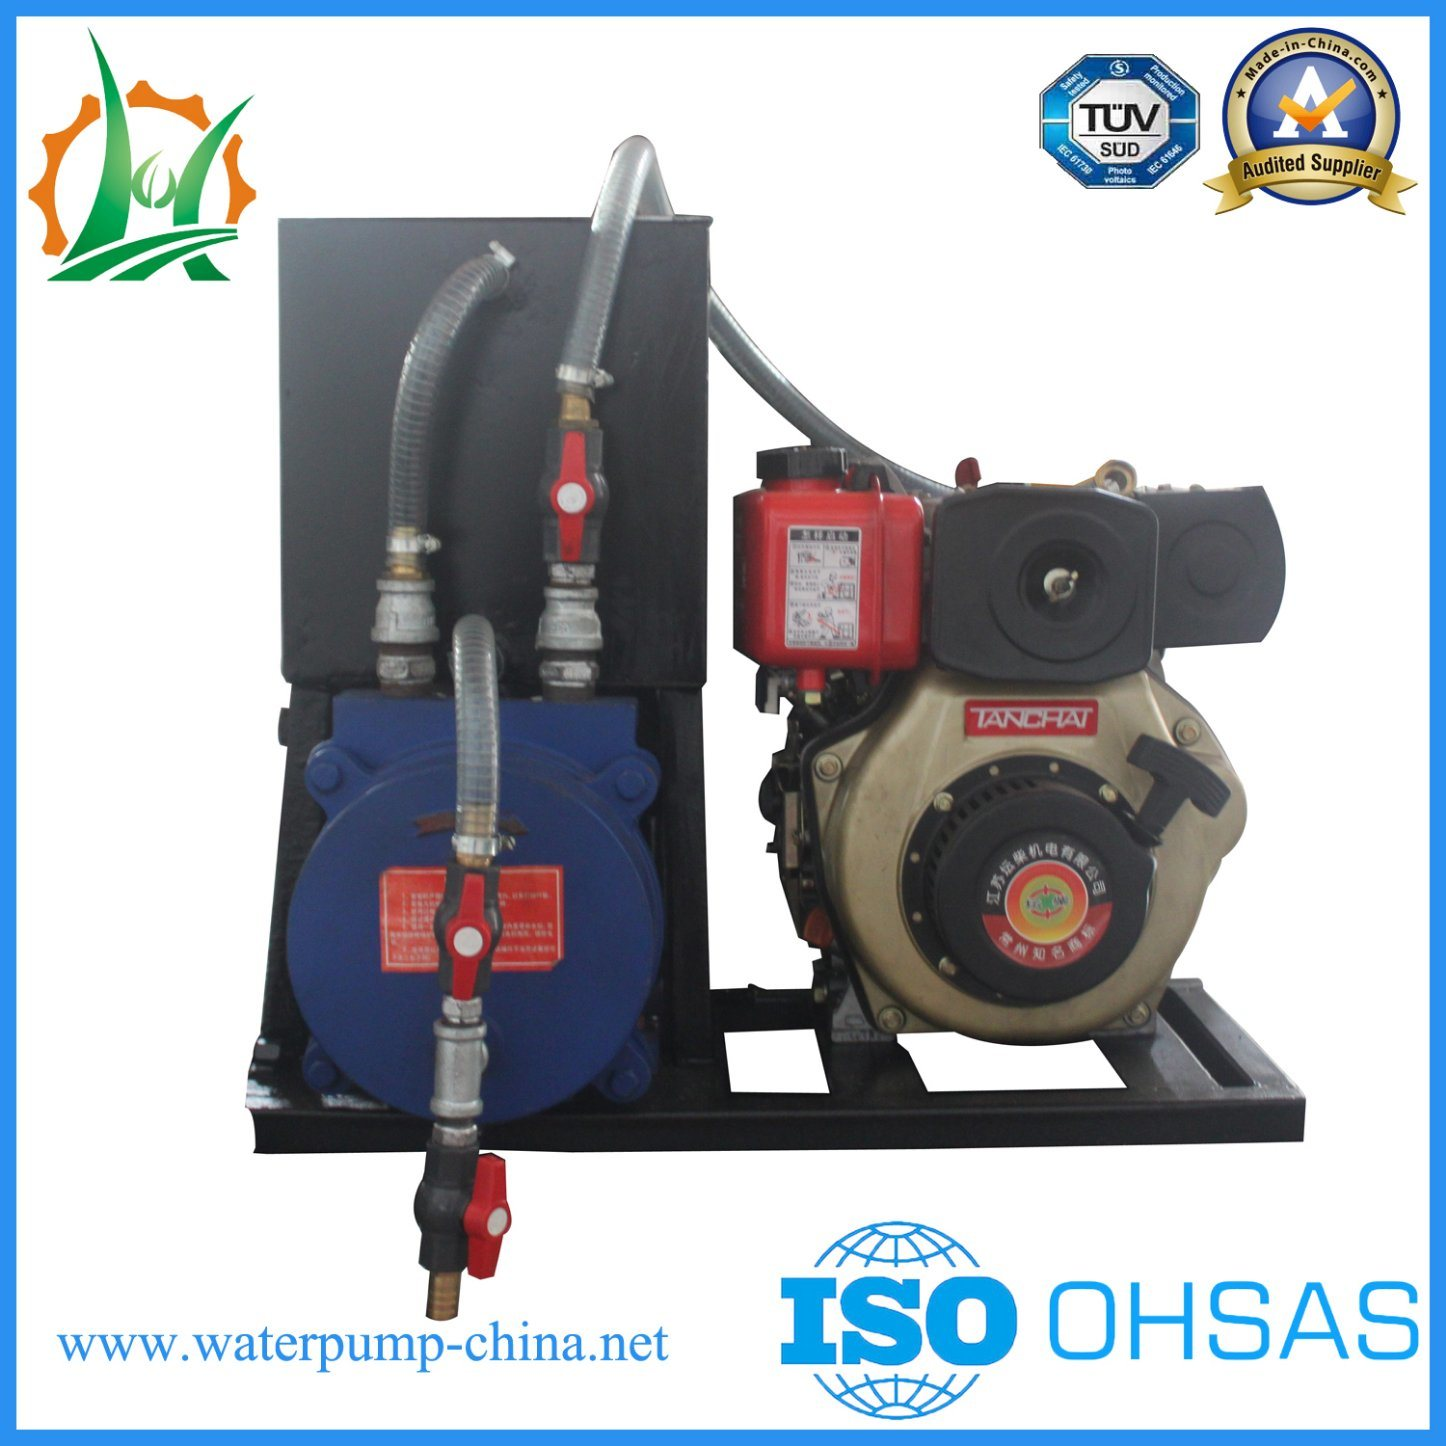 Hbp Trailer Diesel Engine Centrifugal Water Pump with Assisted Vacuum